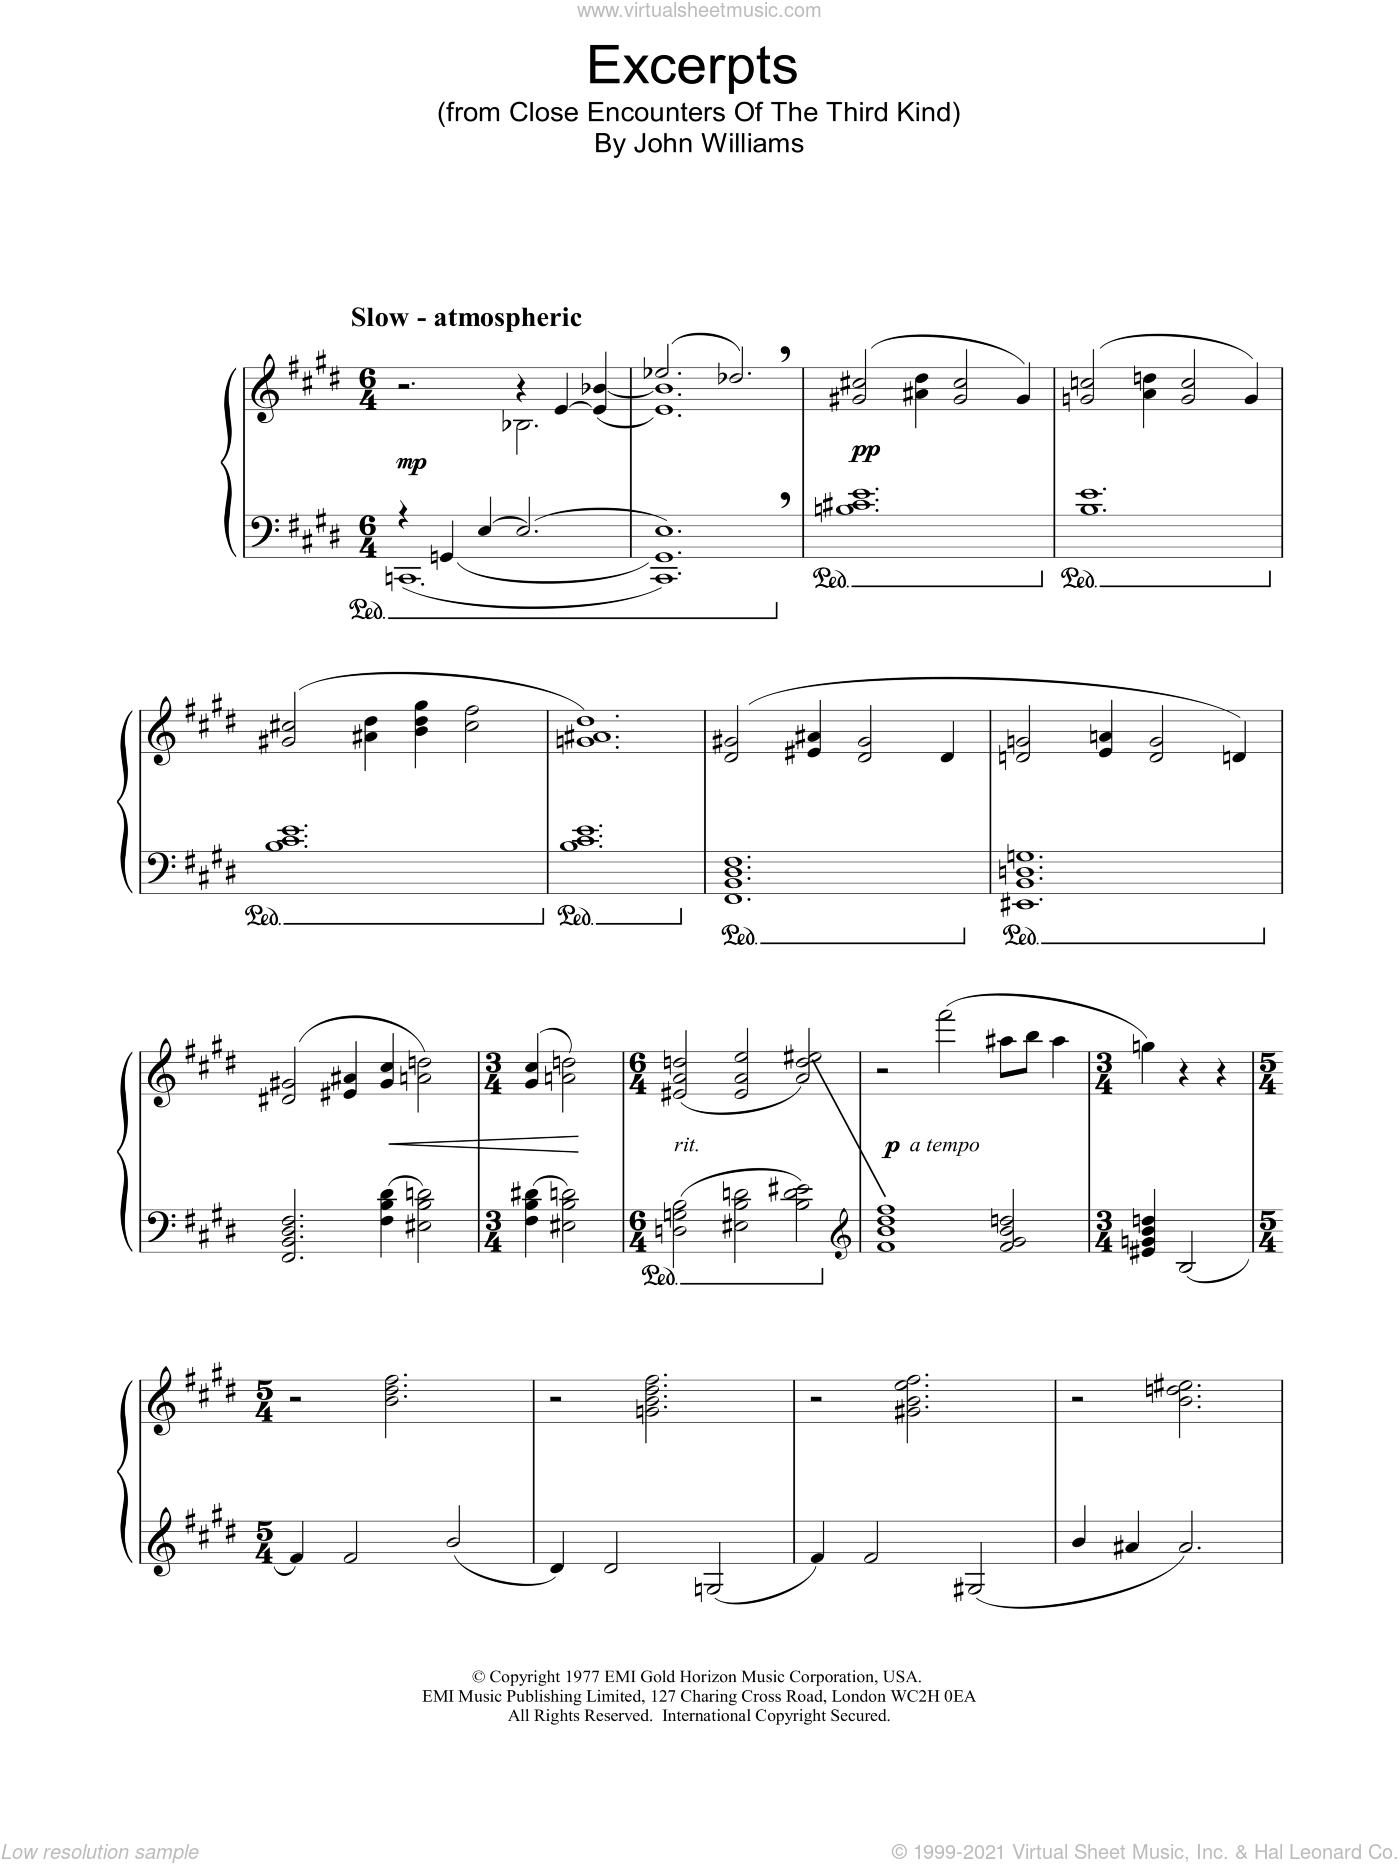 Excerpts from Close Encounters Of The Third Kind sheet music for piano solo by John Williams, intermediate skill level